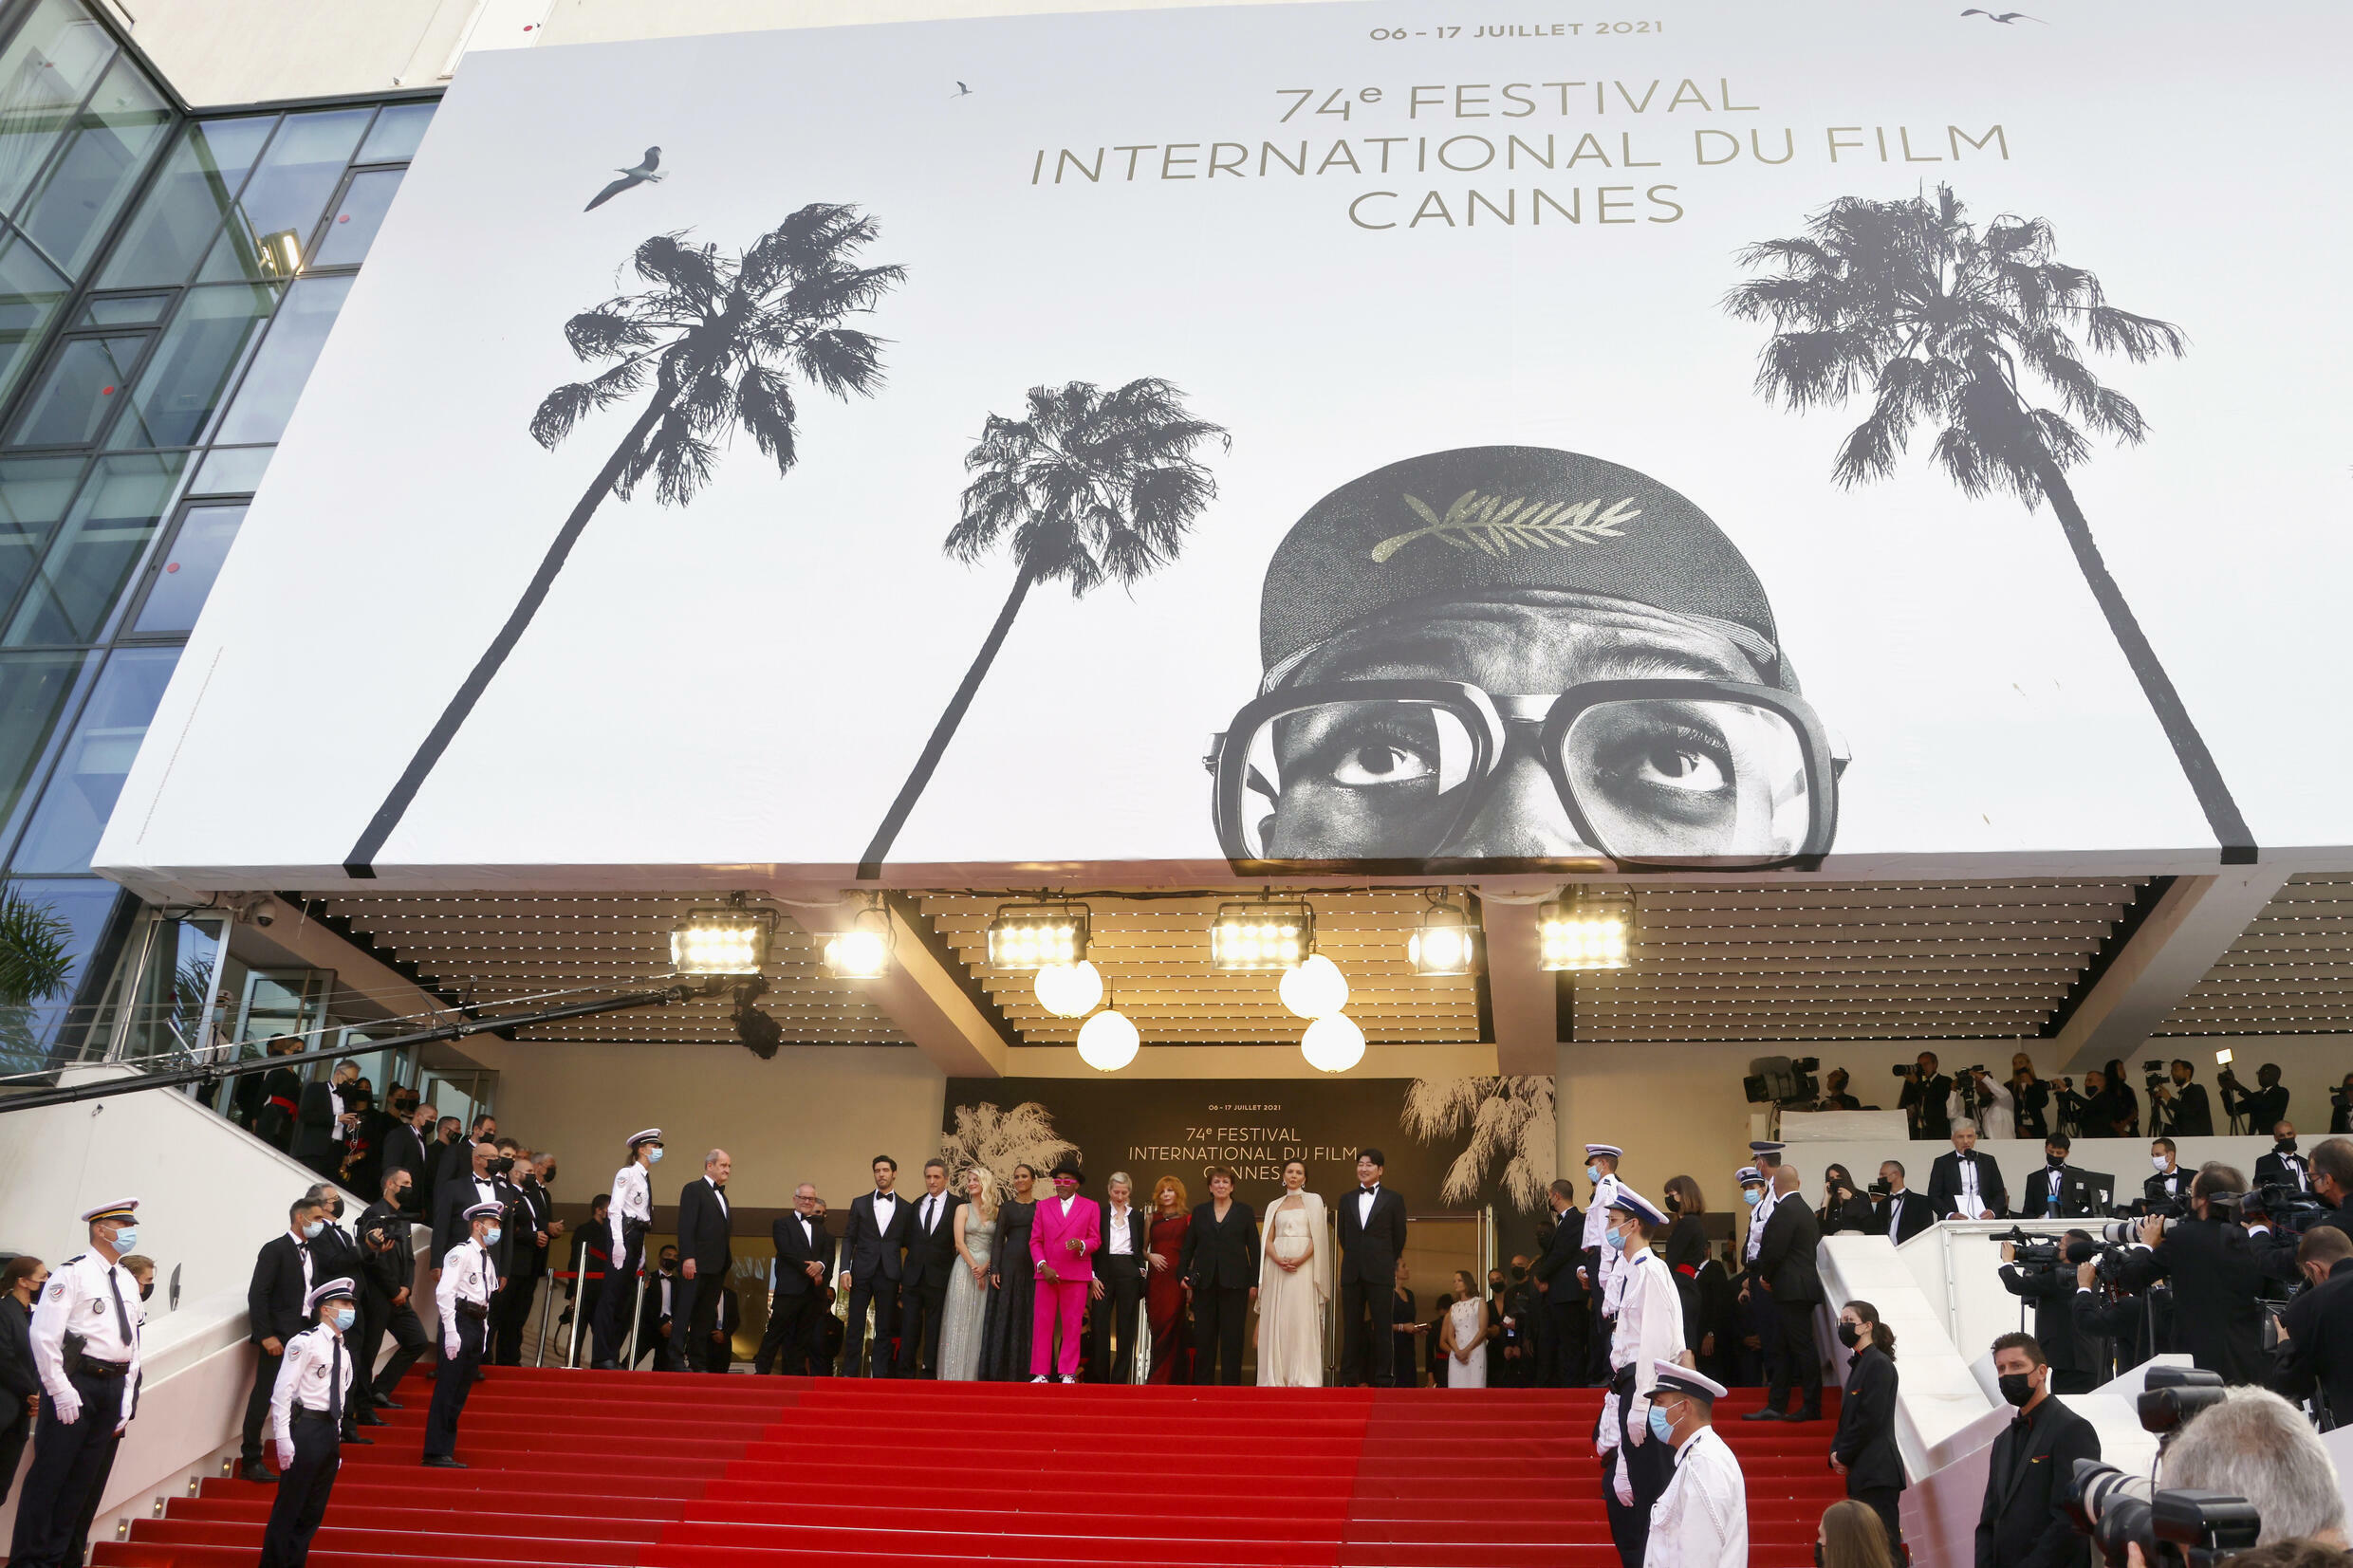 2021-07-06T171901Z_511459636_UP1EH761C3MGS_RTRMADP_3_FILMFESTIVAL-CANNES-OPENING-RED-CARPET